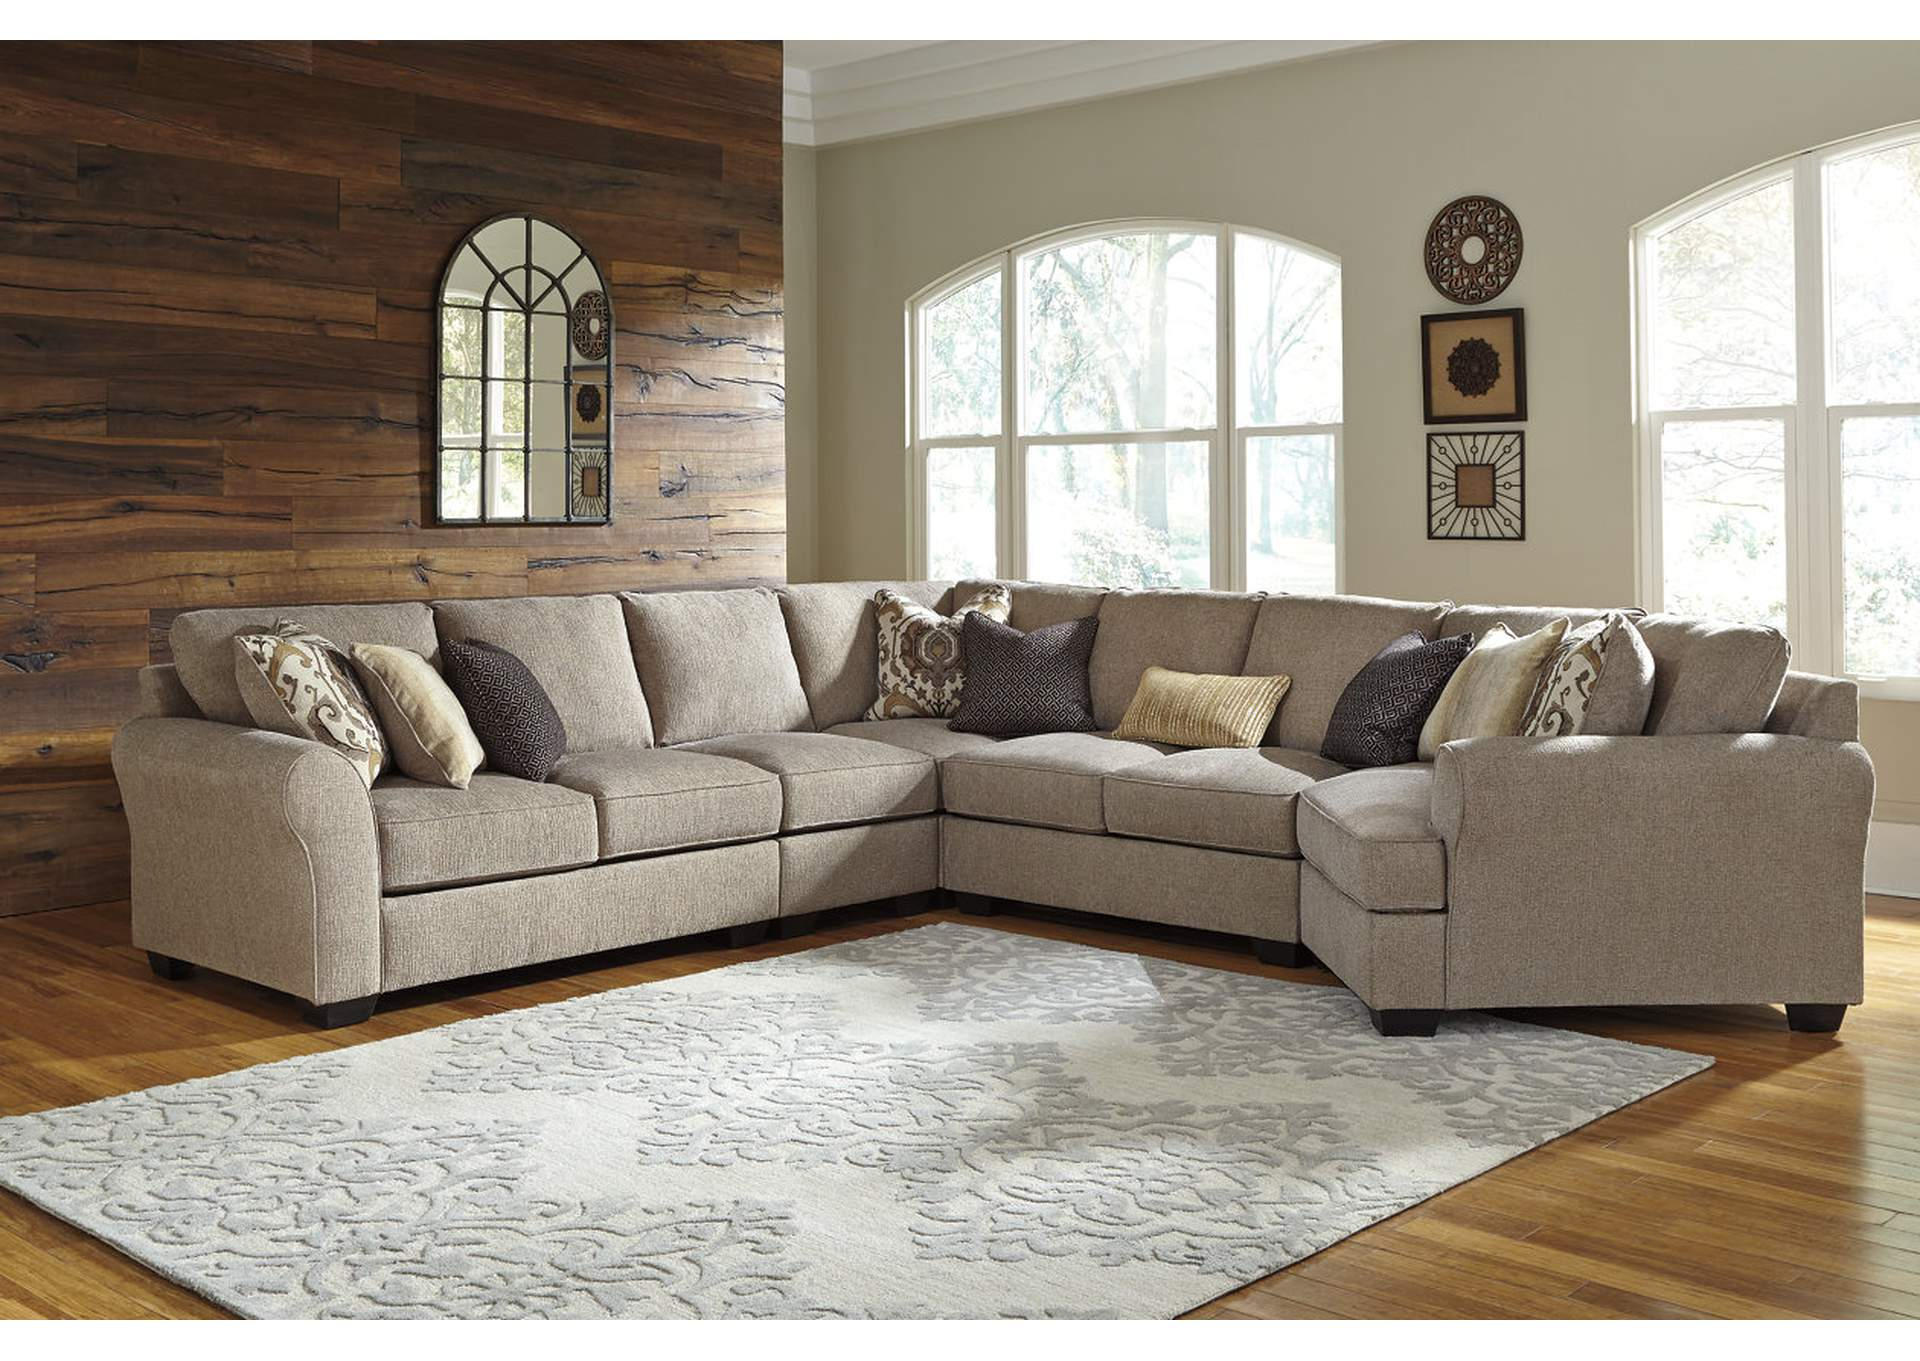 Pantomine Driftwood Extended Sectional W/Right Facing Cuddler,Benchcraft